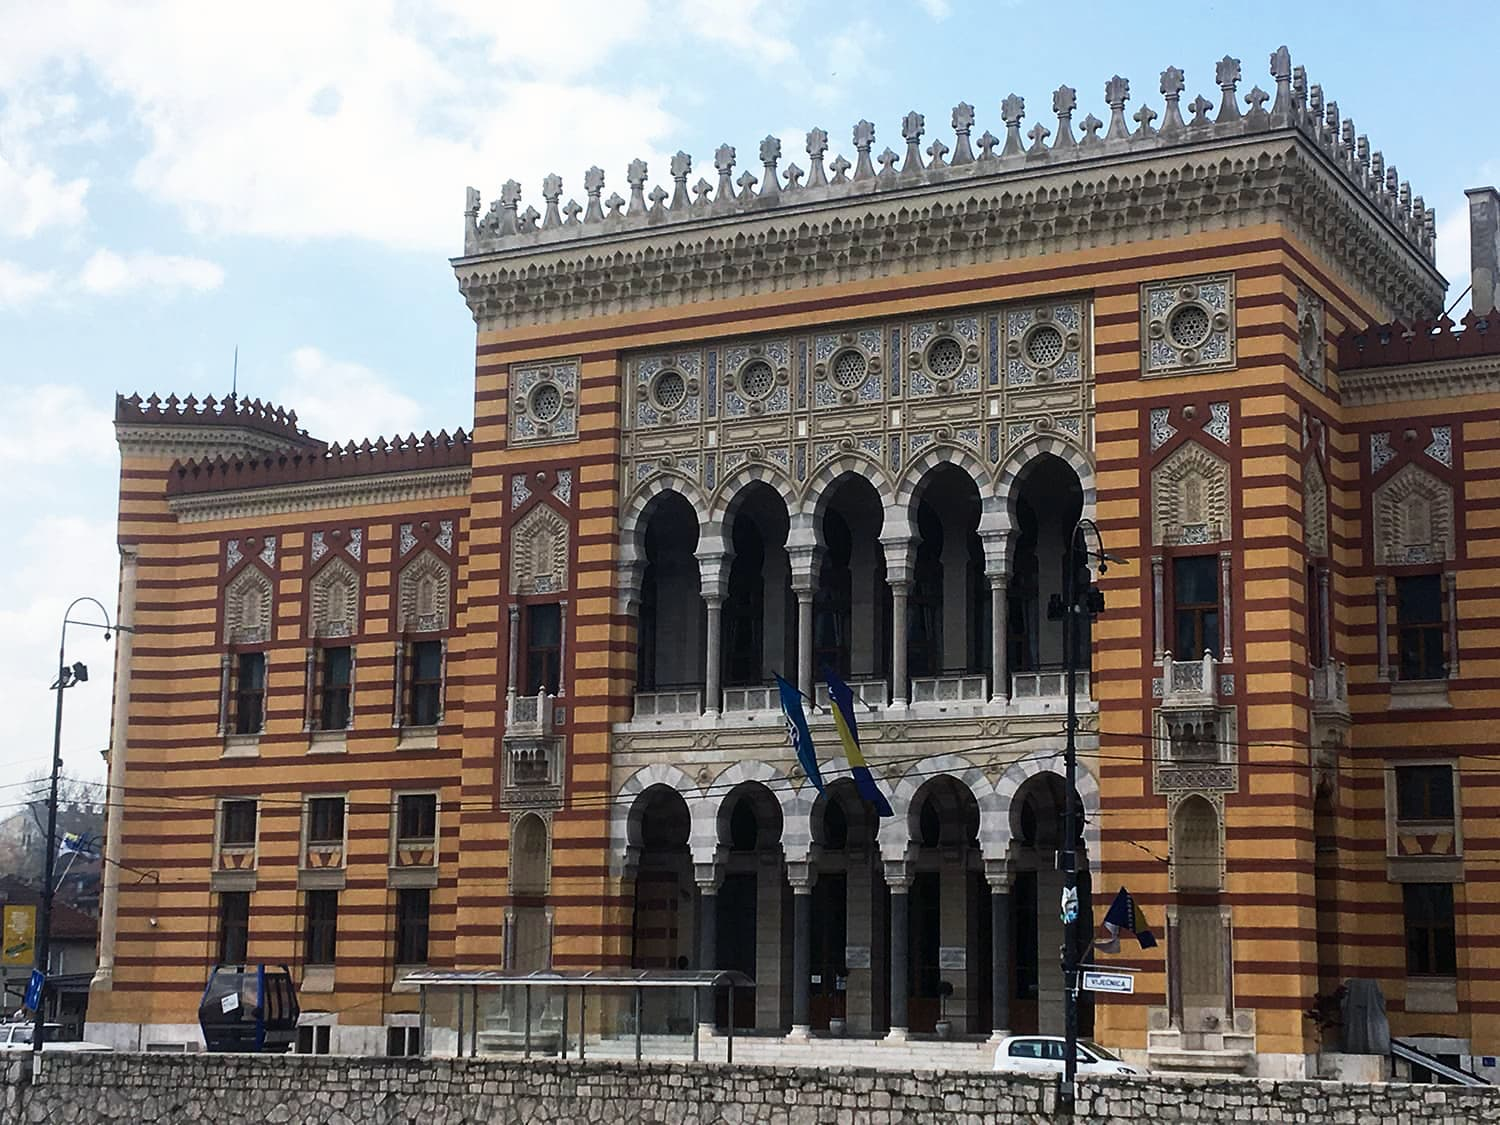 The Vijecnica Sarajevo Town Hall built by the Austro-Hungarians in Moorish-style architecture.